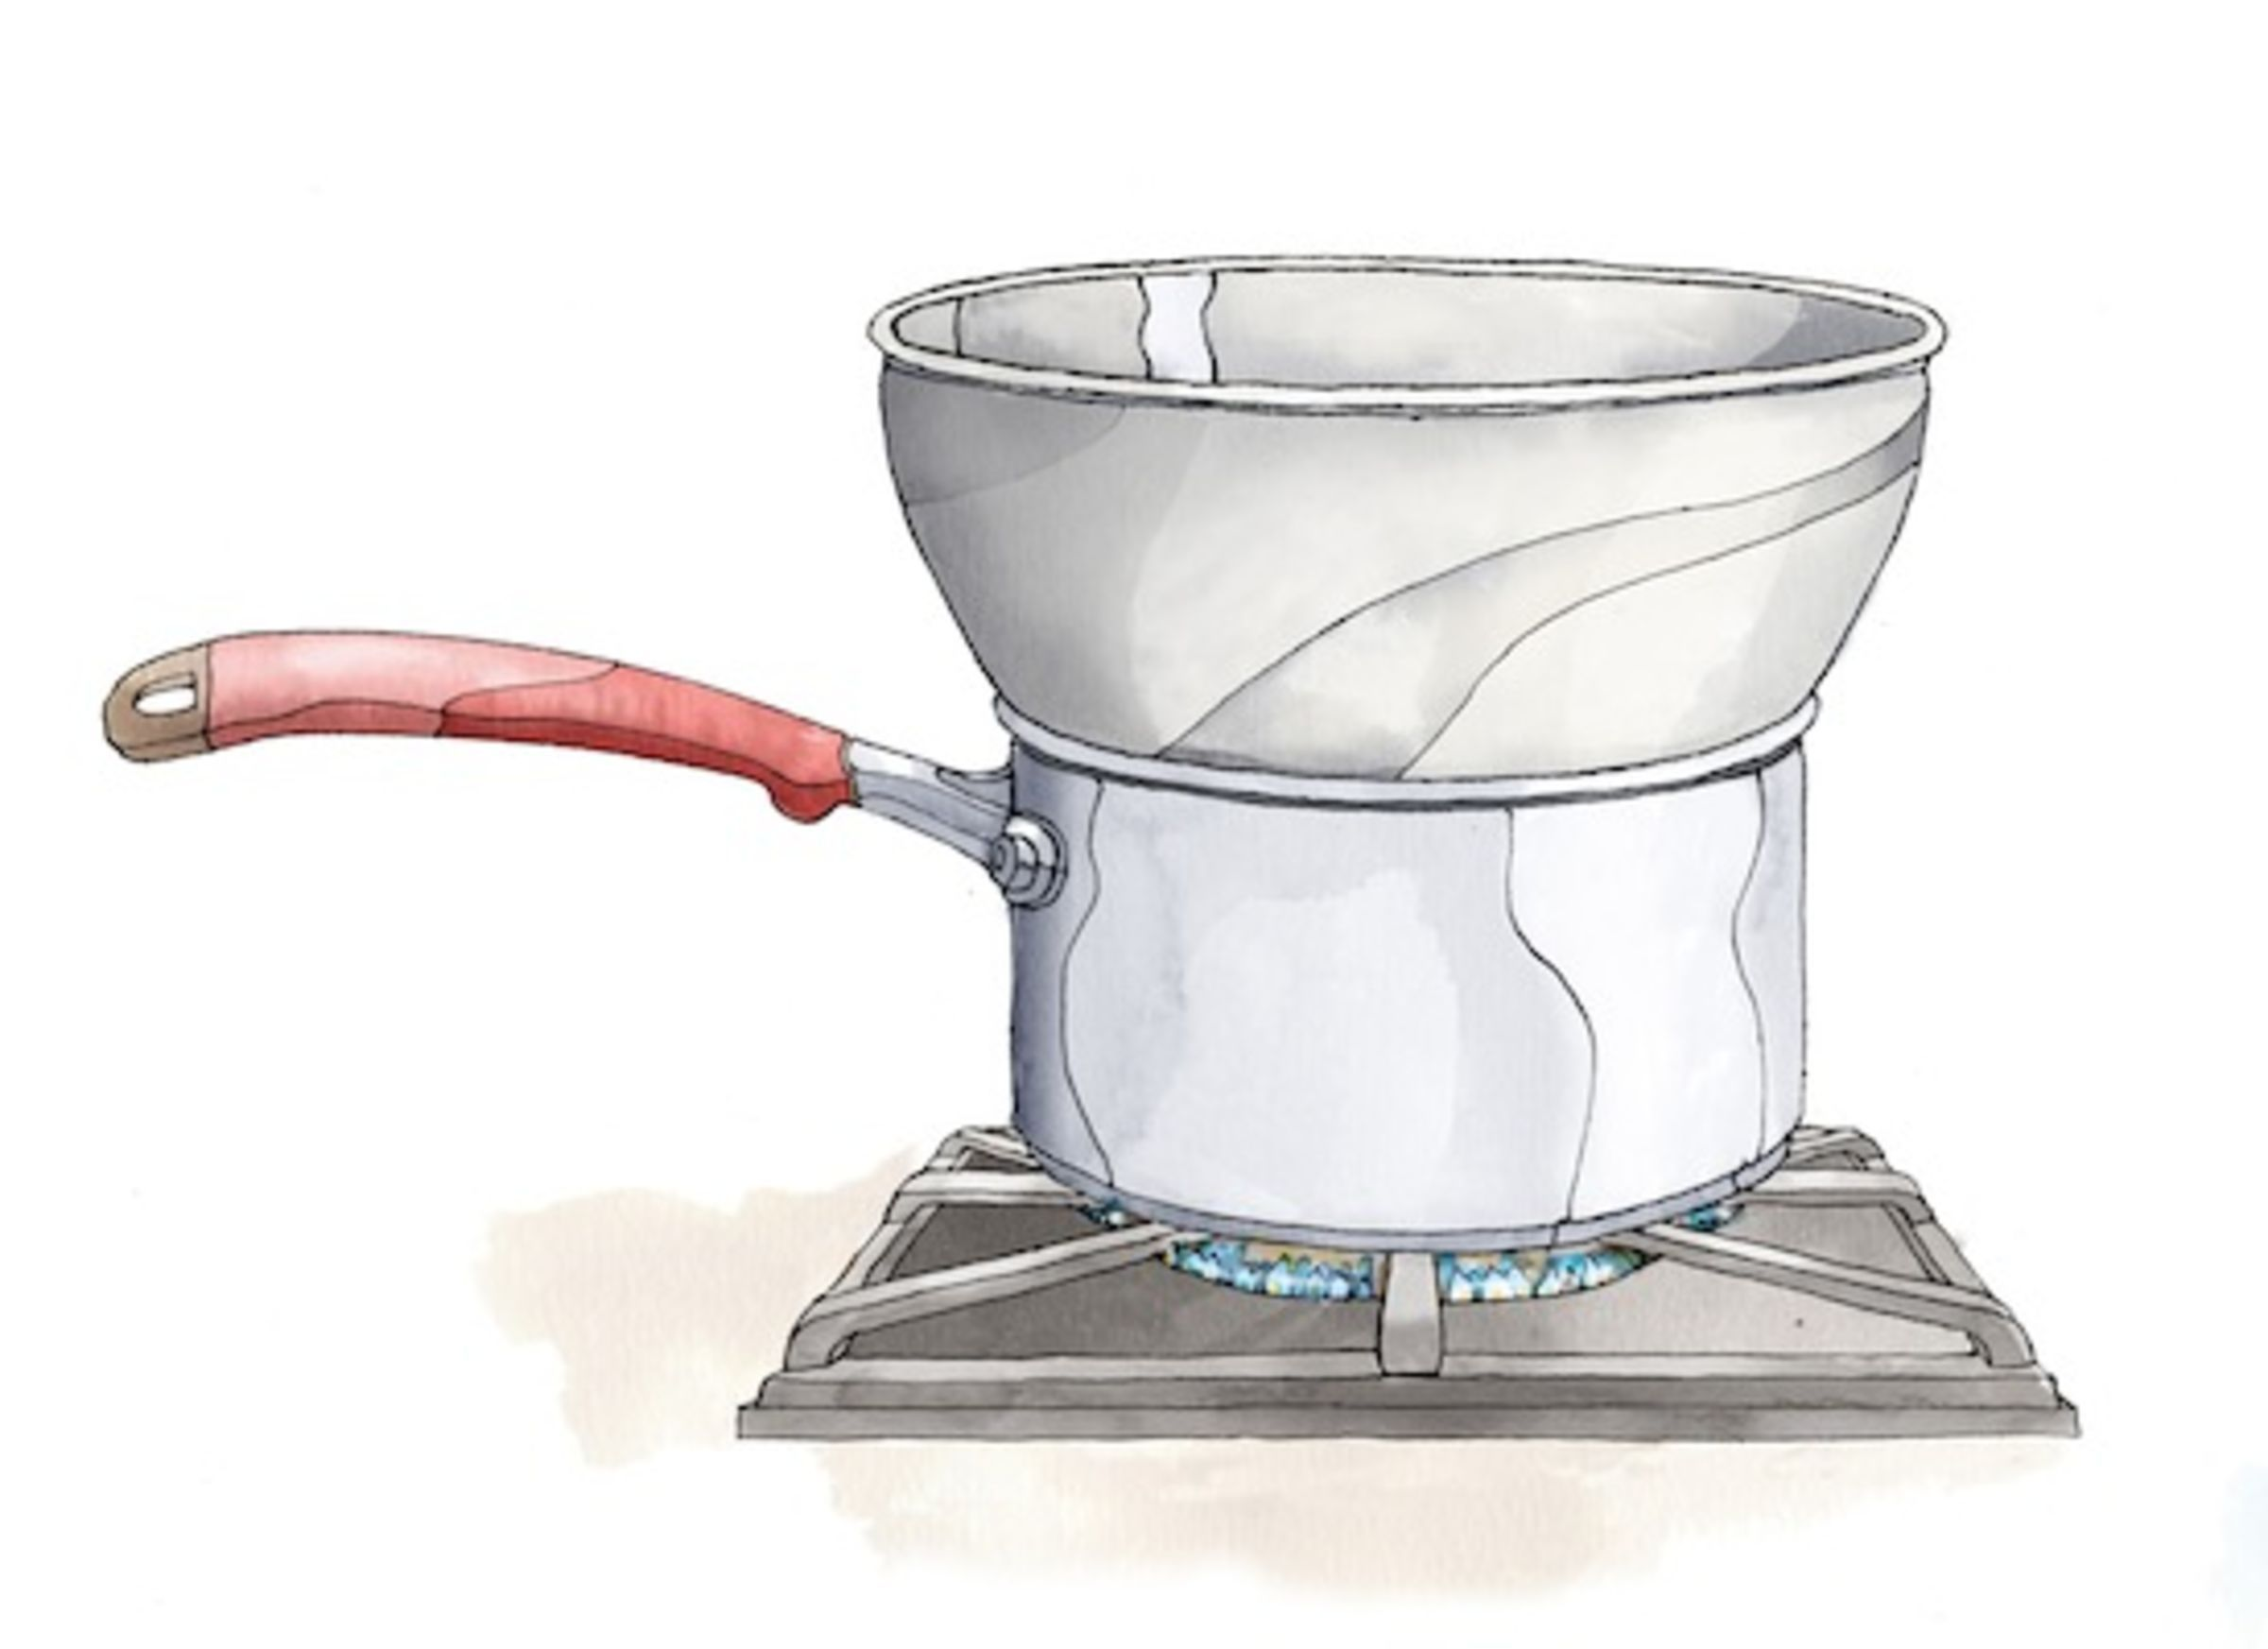 """Don't have a double boiler, don't worry--you can still cook citrus curds, custards and puddings! Just channel your inner """"crafty cook"""" and make this do-it-yourself double boiler with items you already have on hand.Step 1: Simmer a few inches of water in a saucepan.Step 2:Stack a metal or glass bowl on top of a saucepan, making sure the bowl fits snugly.What's inside won't burn orstick because the steam fromthe simmering water will heat the bowl gently and evenly. Justm..."""